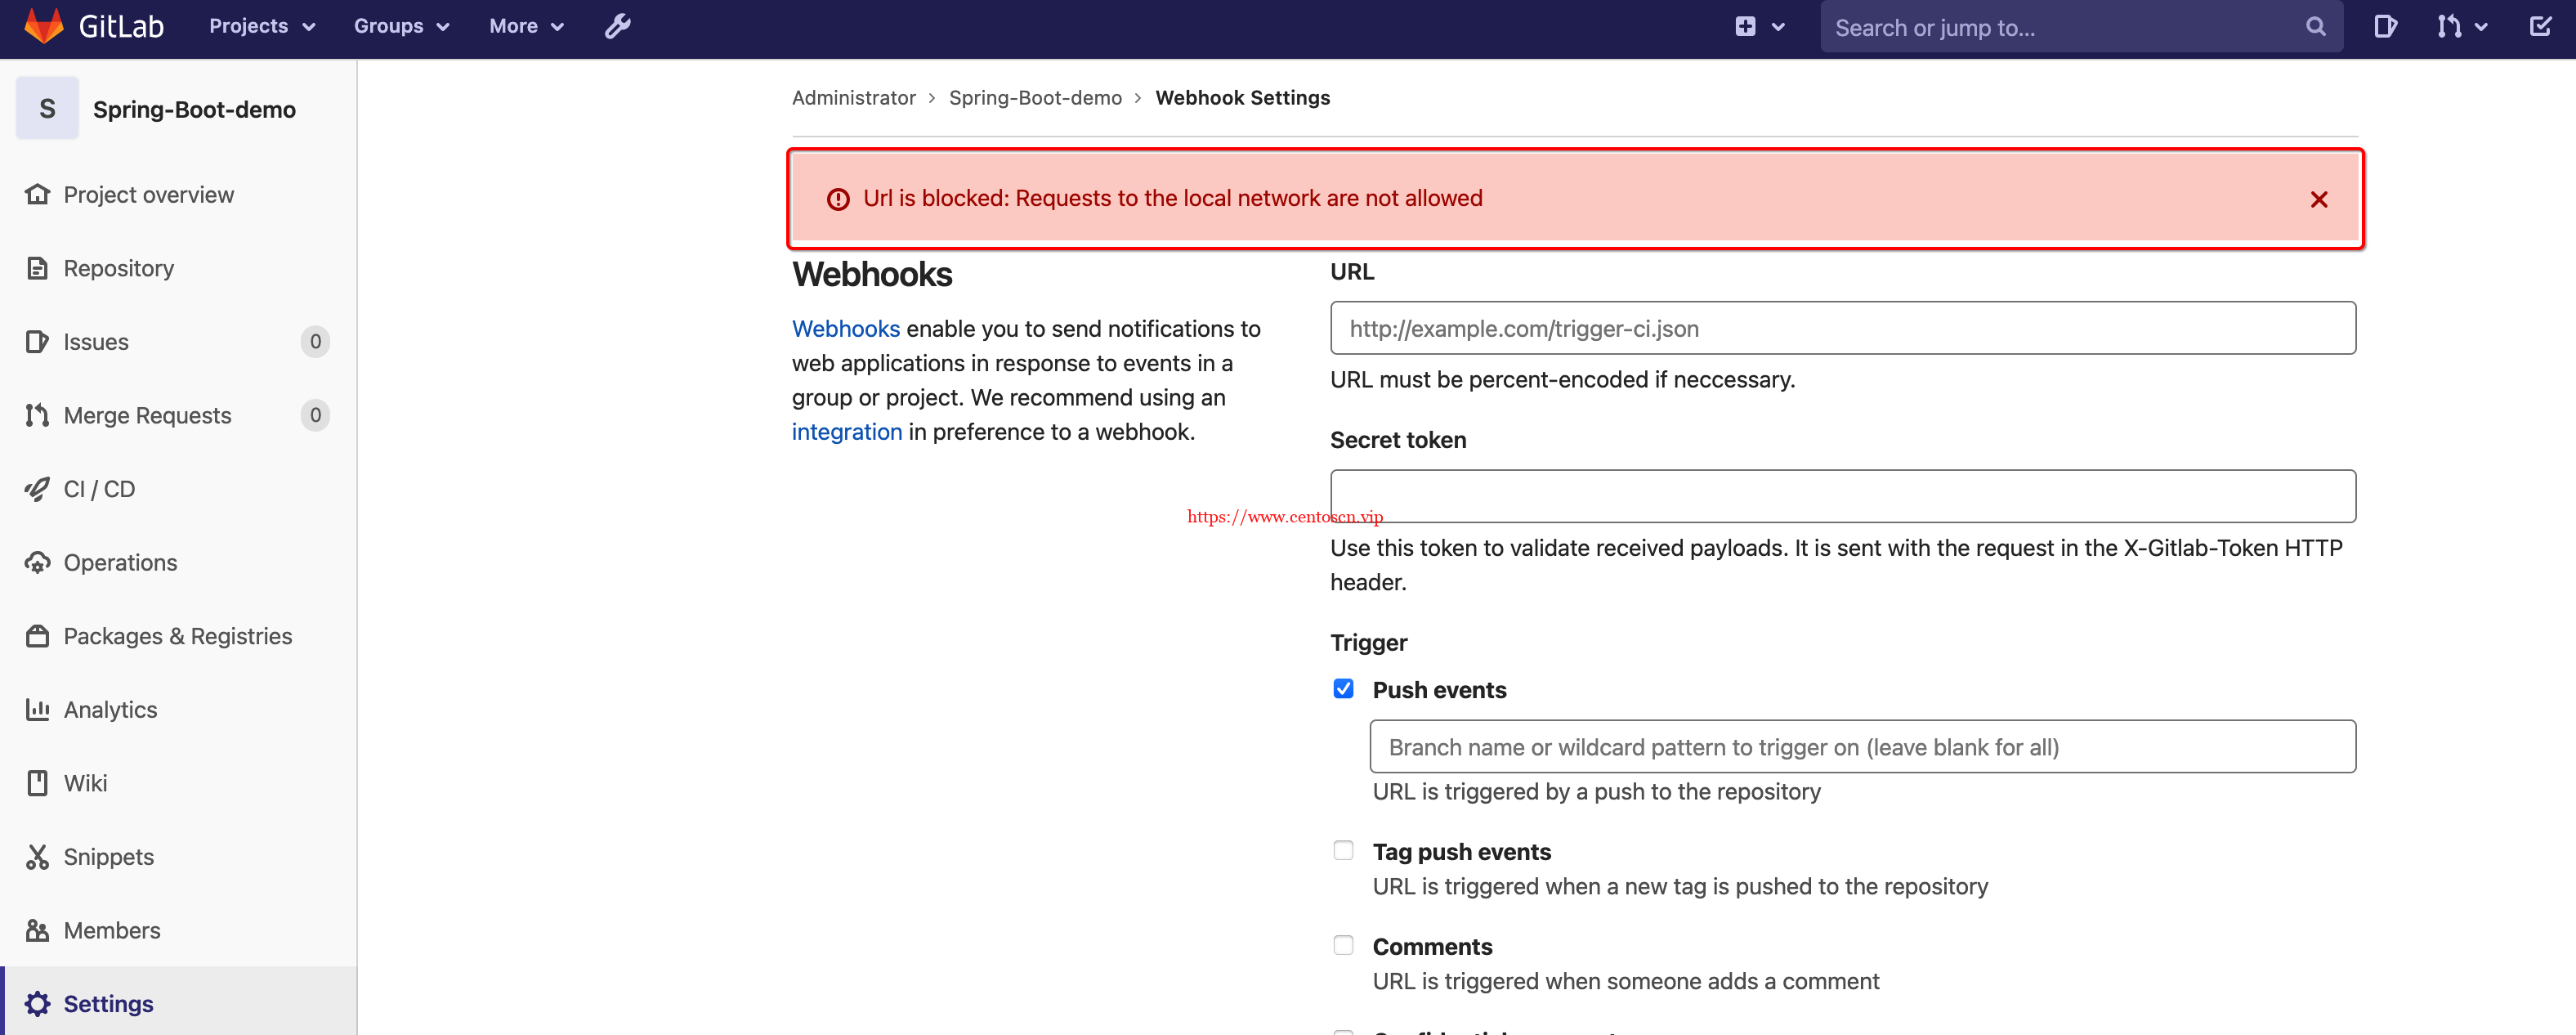 Url is blocked: Requests to the local network are not allowed